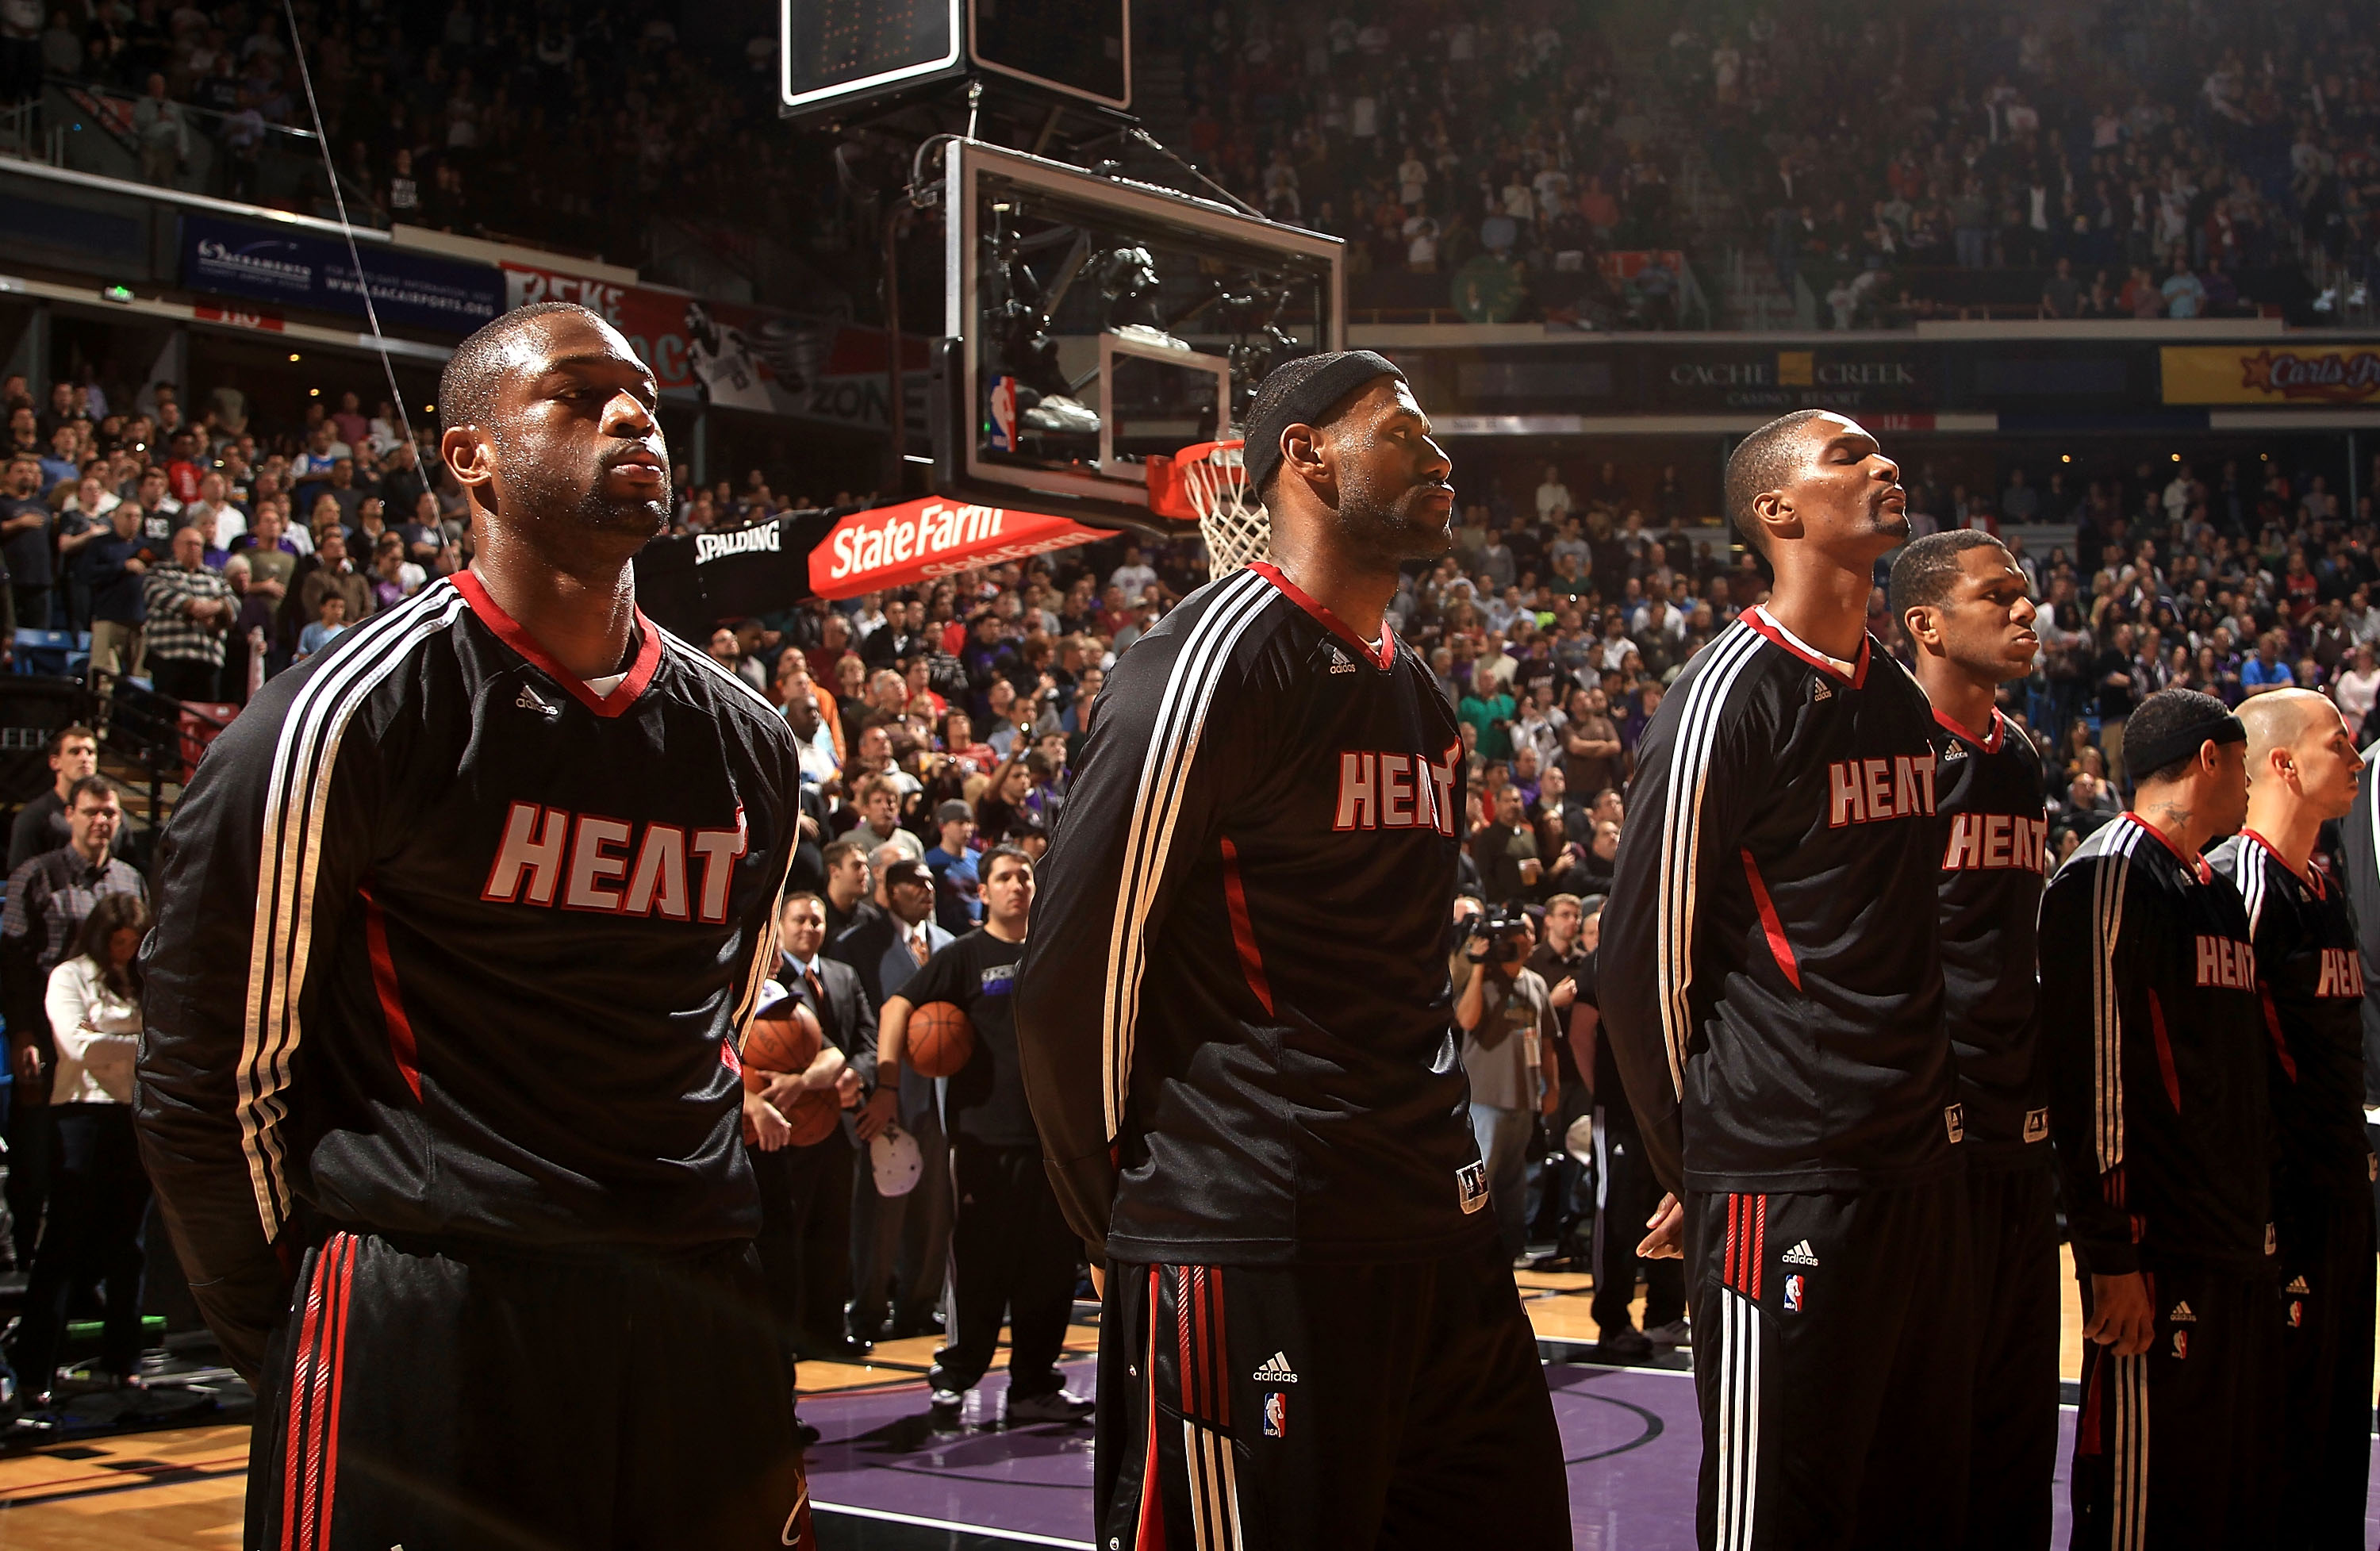 SACRAMENTO, CA - DECEMBER 11:  Dwayne Wade #3, Lebron James #6 and Chris Bosh #1 of the Miami Heat stand for the National Anthem before their game against the Sacramento Kings at ARCO Arena on December 11, 2010 in Sacramento, California.  NOTE TO USER: Us